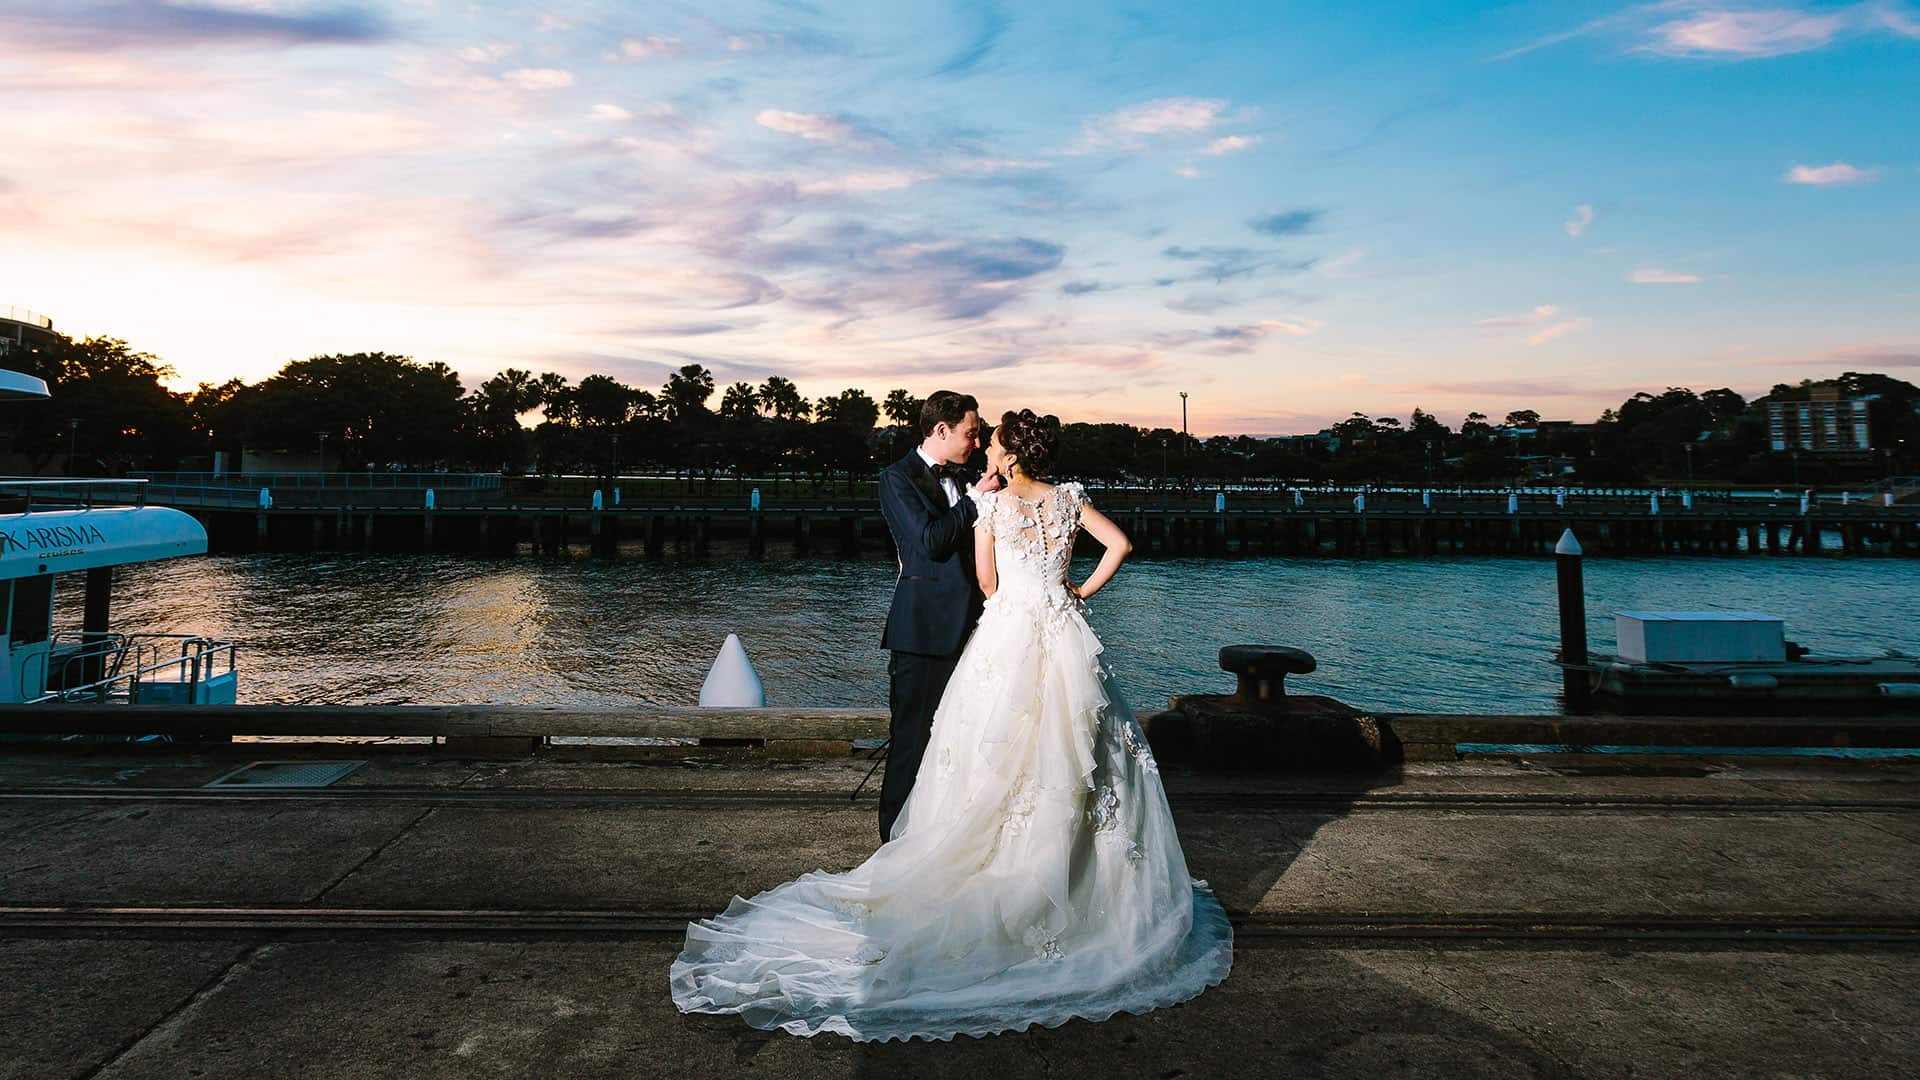 bridal photo taken at sunset on the finger wharf